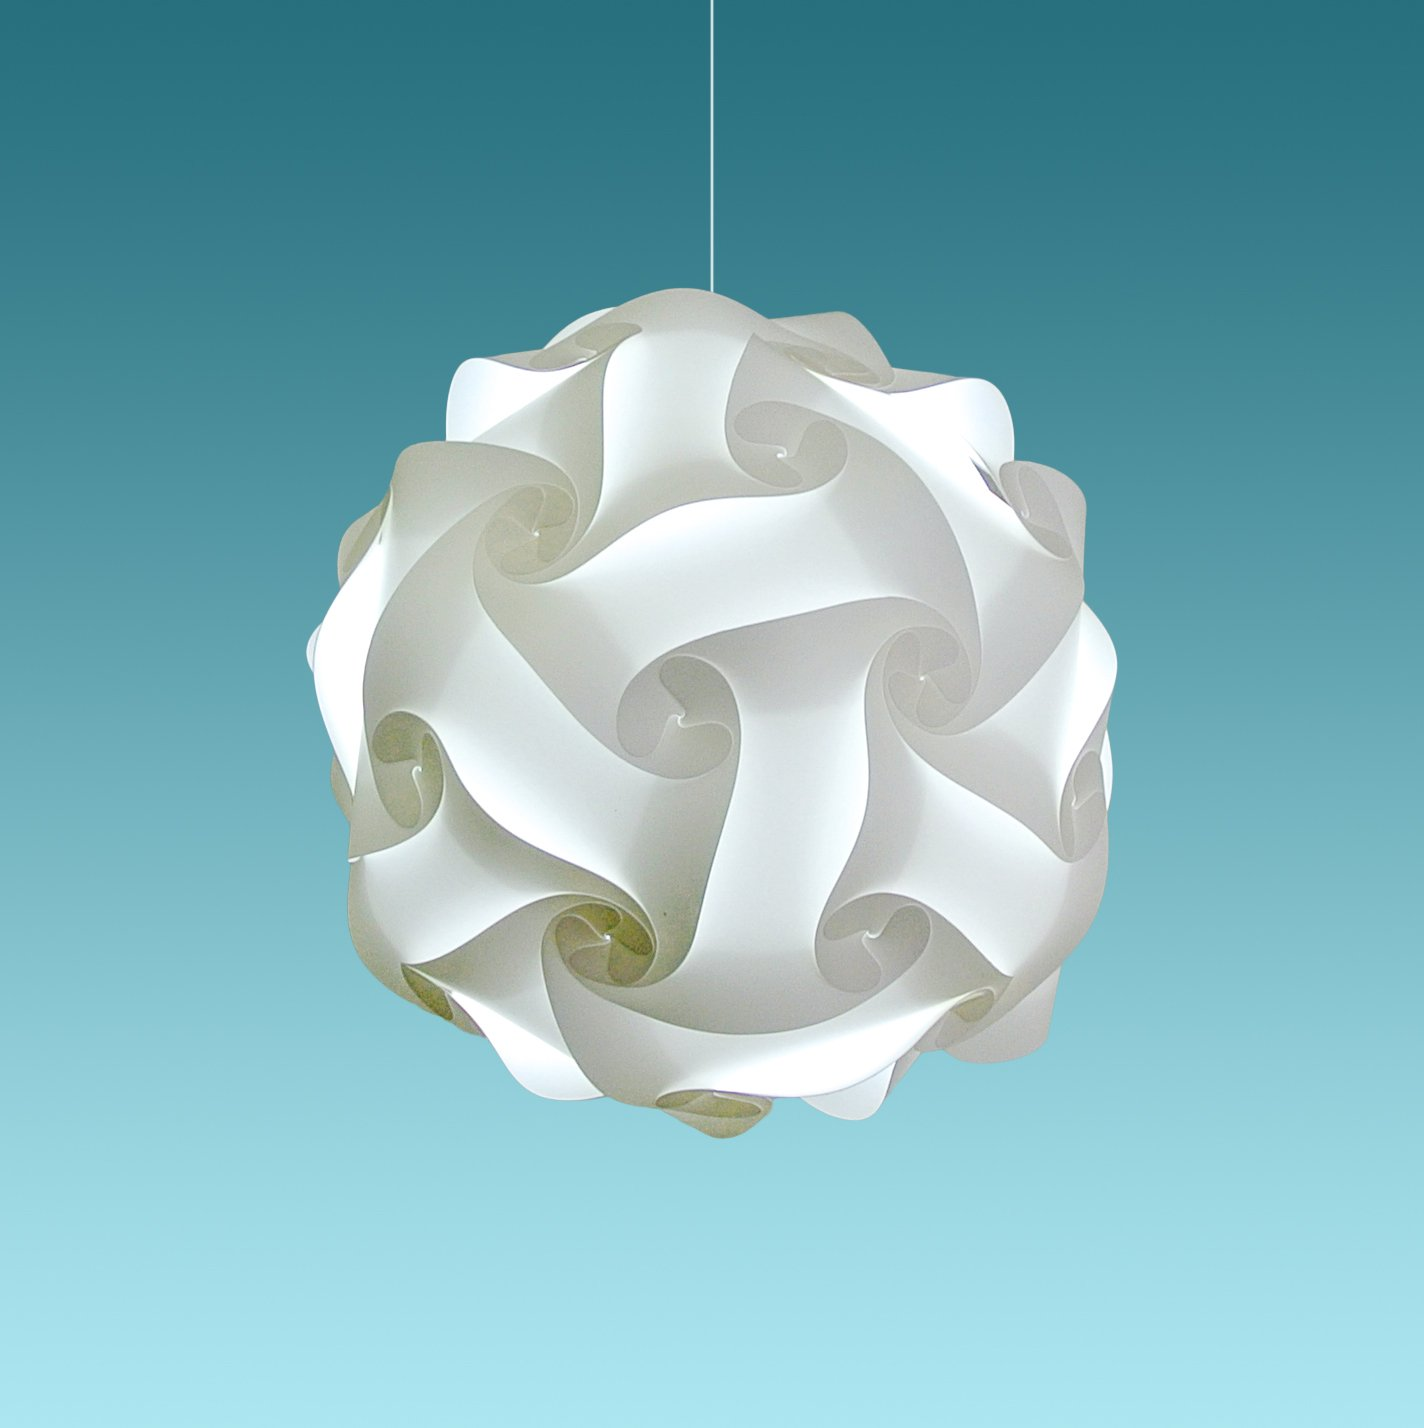 """Akari Lanterns Medium Swirl 16"""" wide , Cool White Glow, Modern & Unique Ceiling Hanging Light Fixtures / Swag Plug in or Hardwire as Pendant Lamp Shade - Spiral bulb included, Easy to install"""